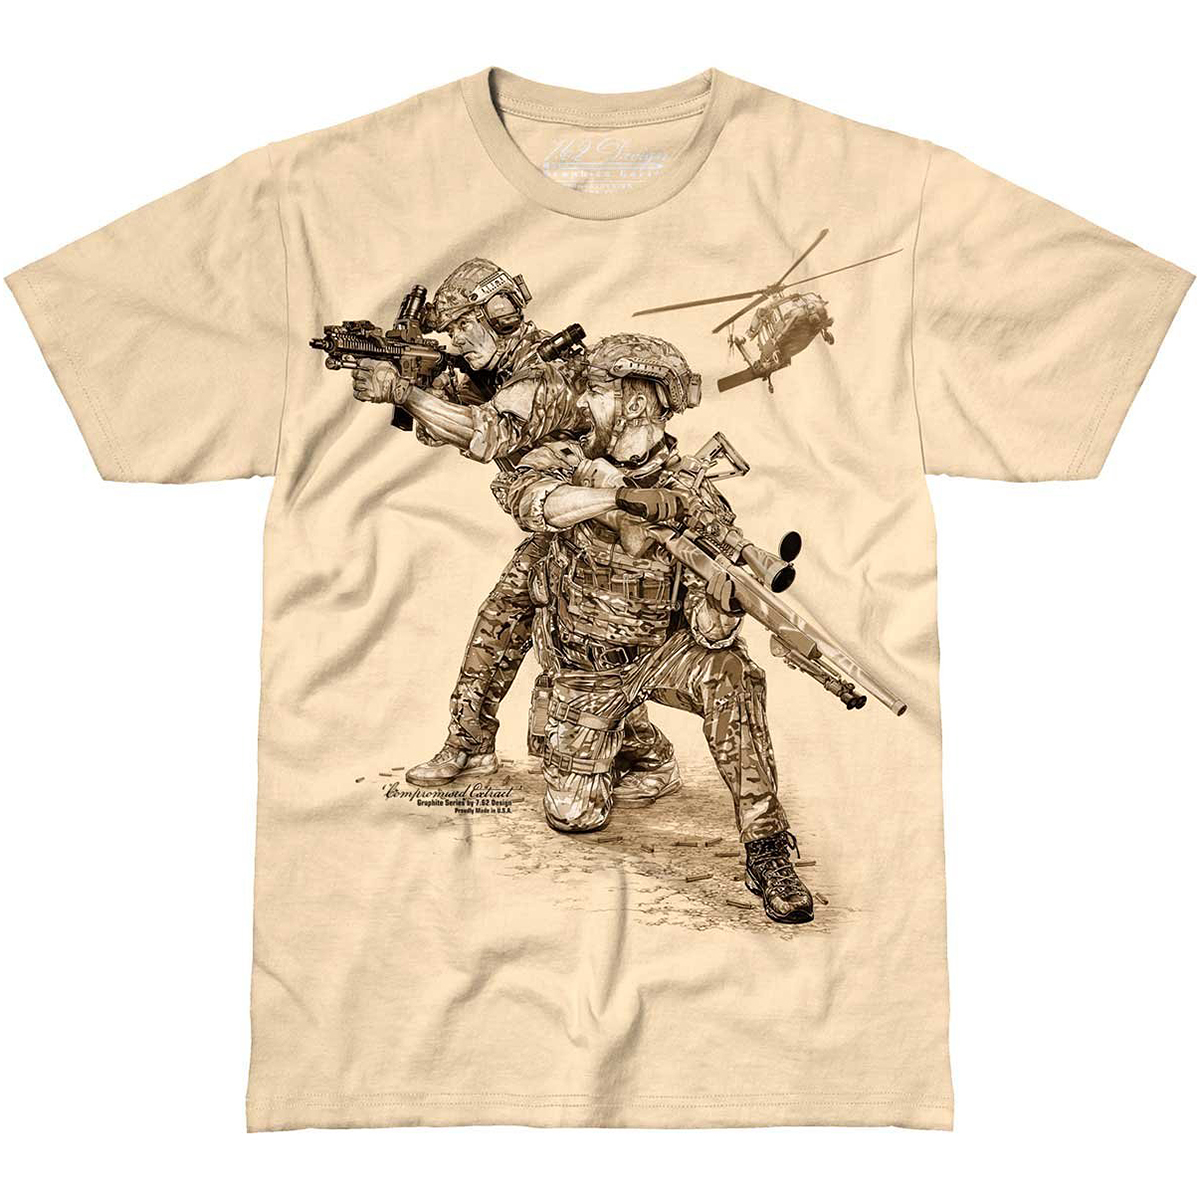 762 DESIGN COMPROMISED EXTRACT MENS T SHIRT MILITARY